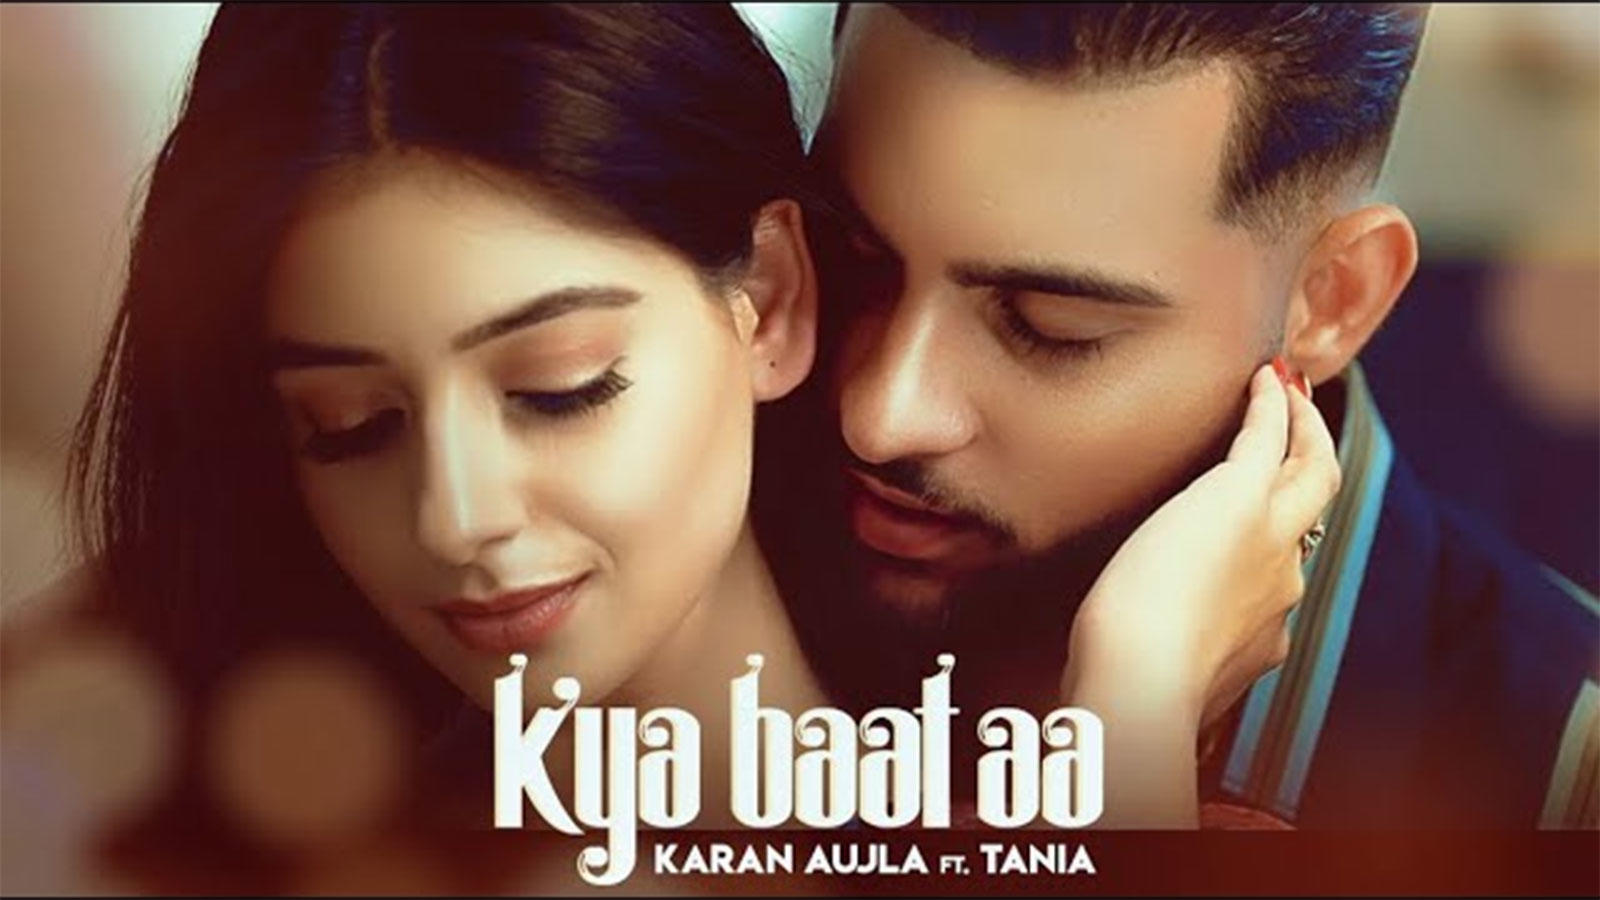 Watch Popular Punjabi Song Music Video - 'Kya Baat Aa' Sung By Karan Aujla  Featuring Tania | Punjabi Video Songs - Times of India